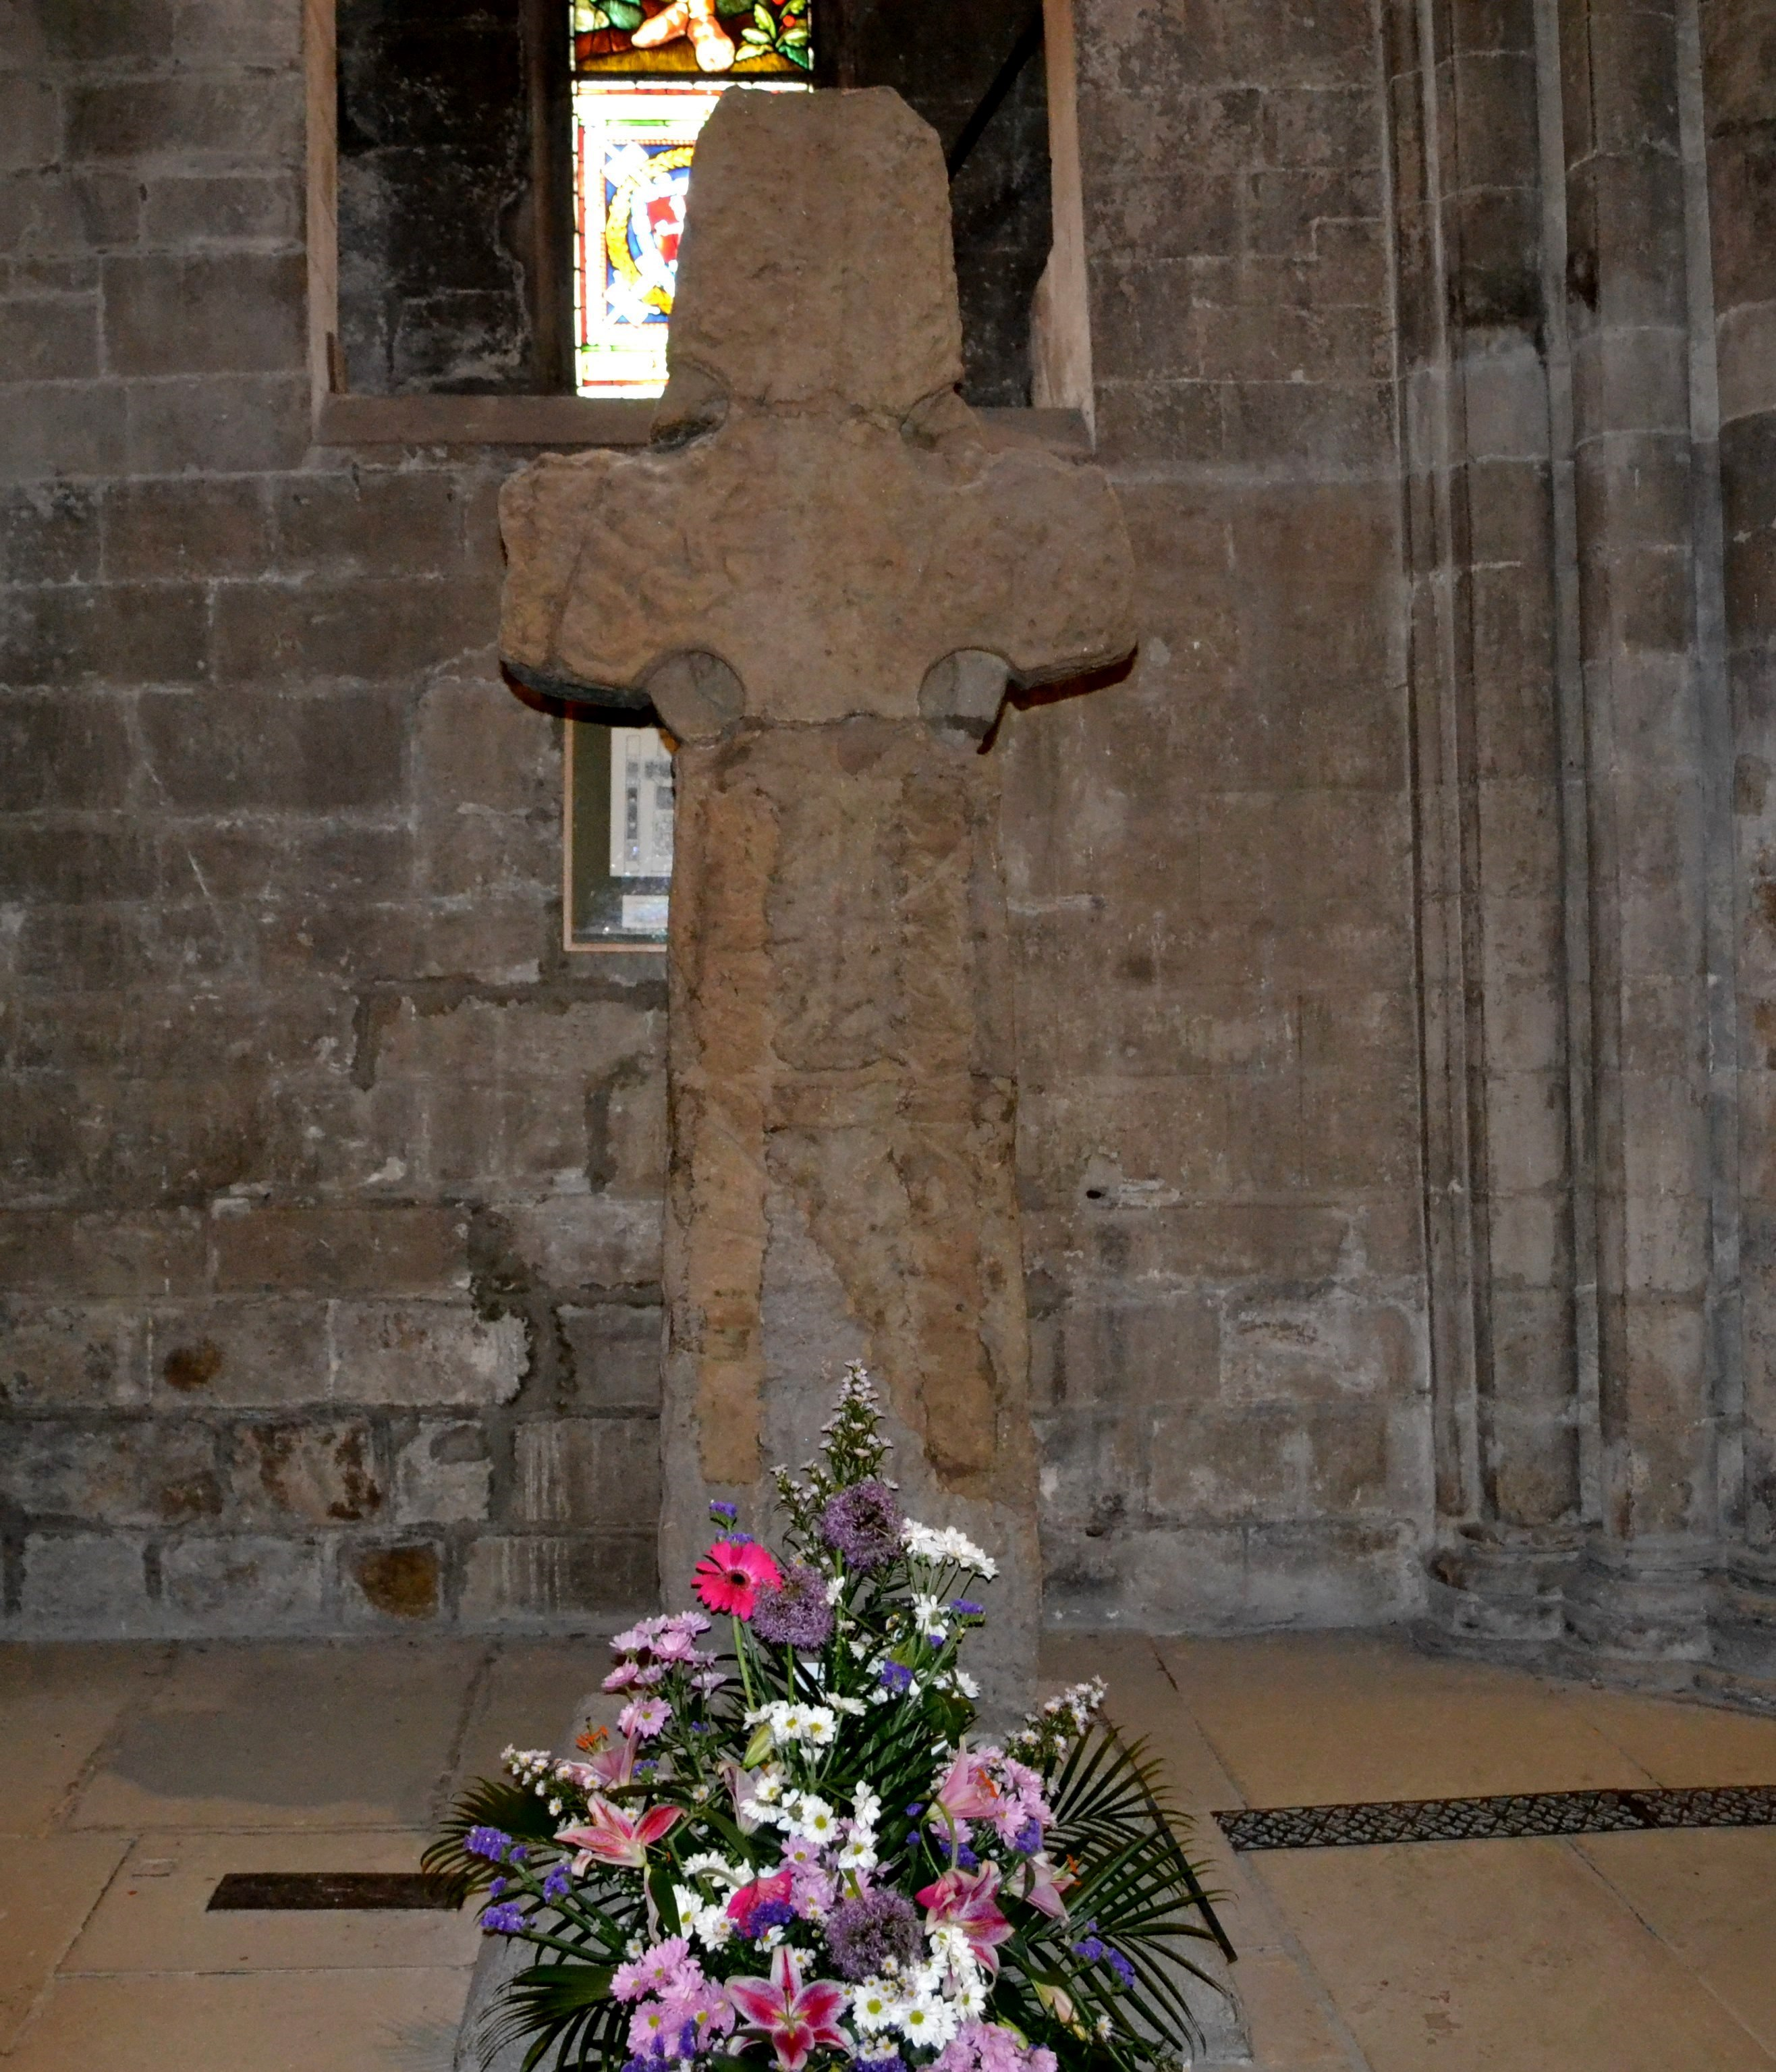 The Barochan Cross